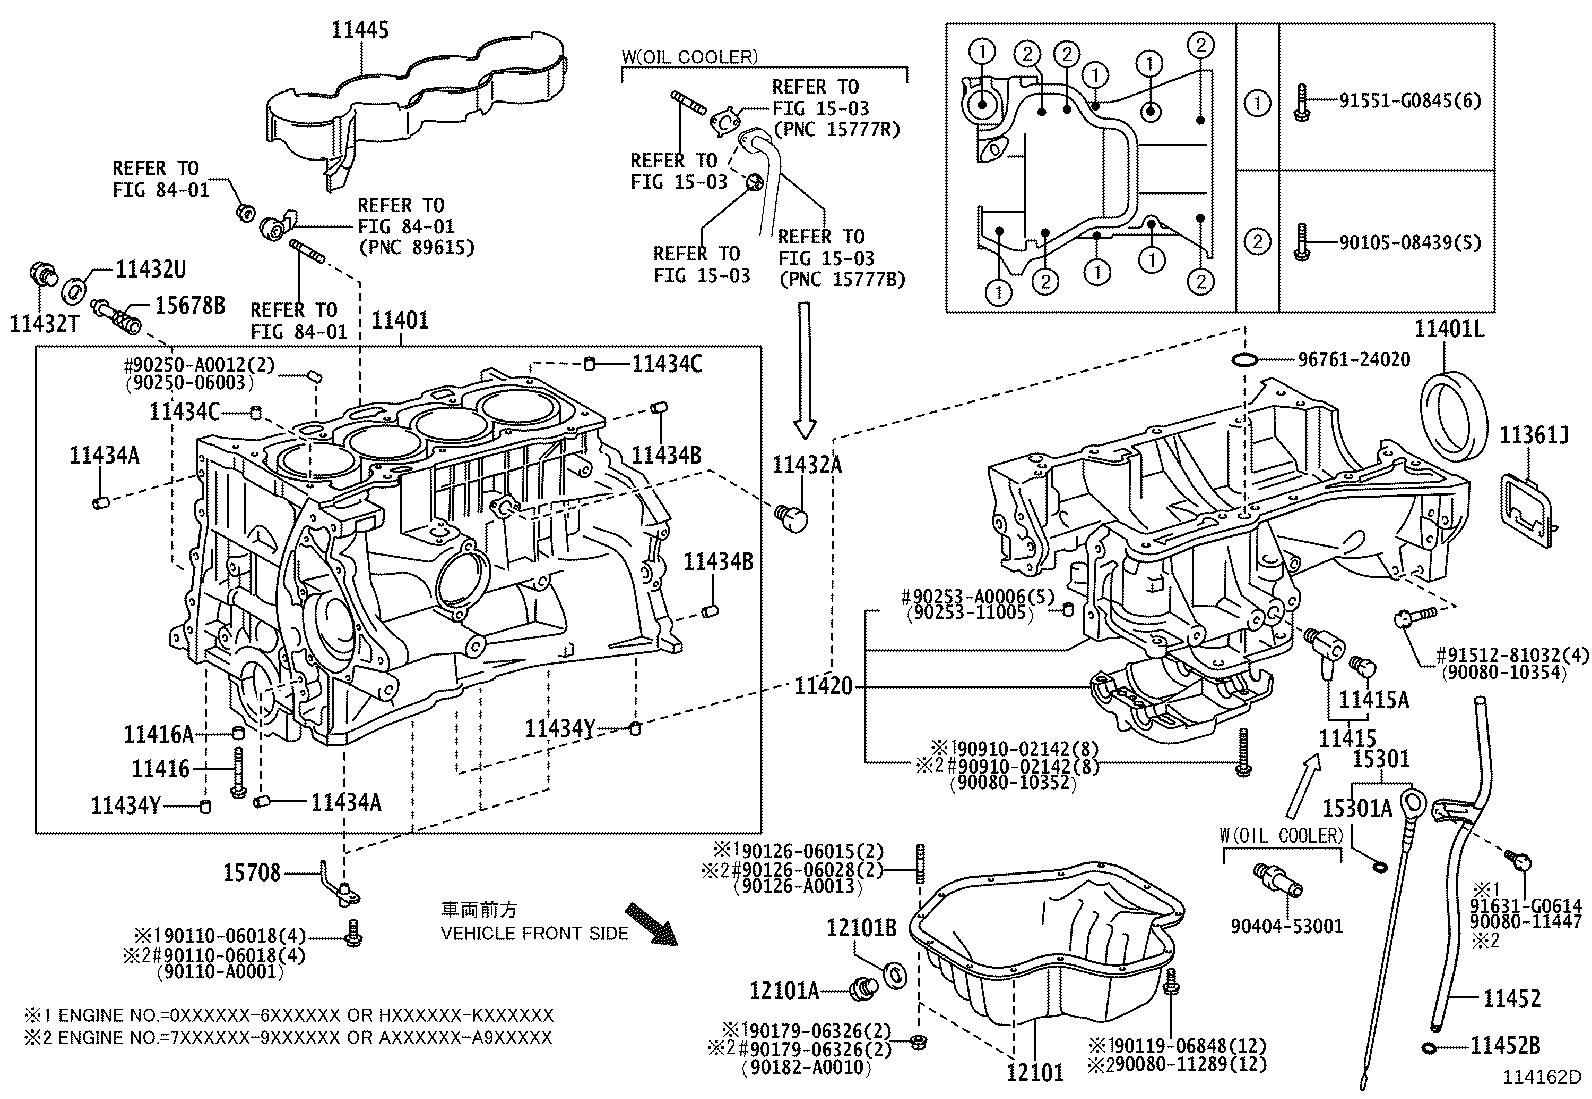 Toyota Camry Ring. O(for oil level gage guide); o(for oil